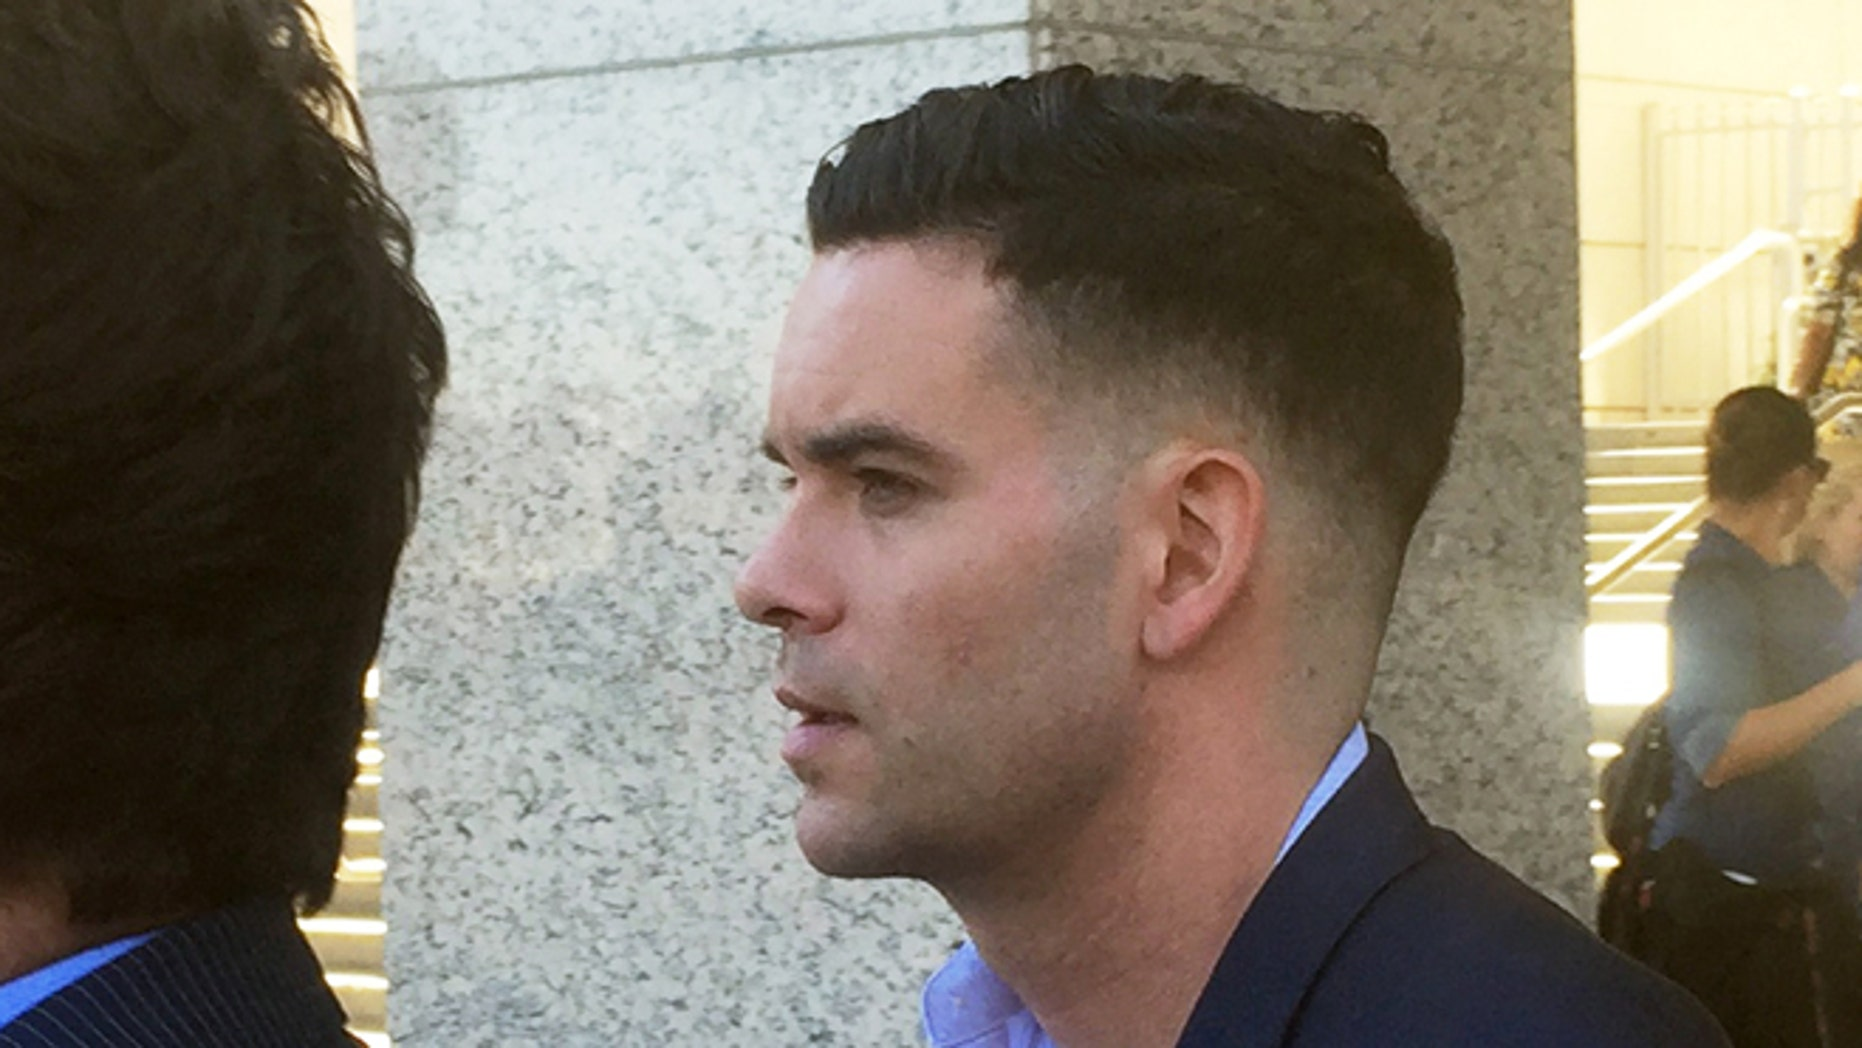 'Glee' actor Mark Salling outside federal court in Los Angeles after pleading not guilty to federal pornography charges.